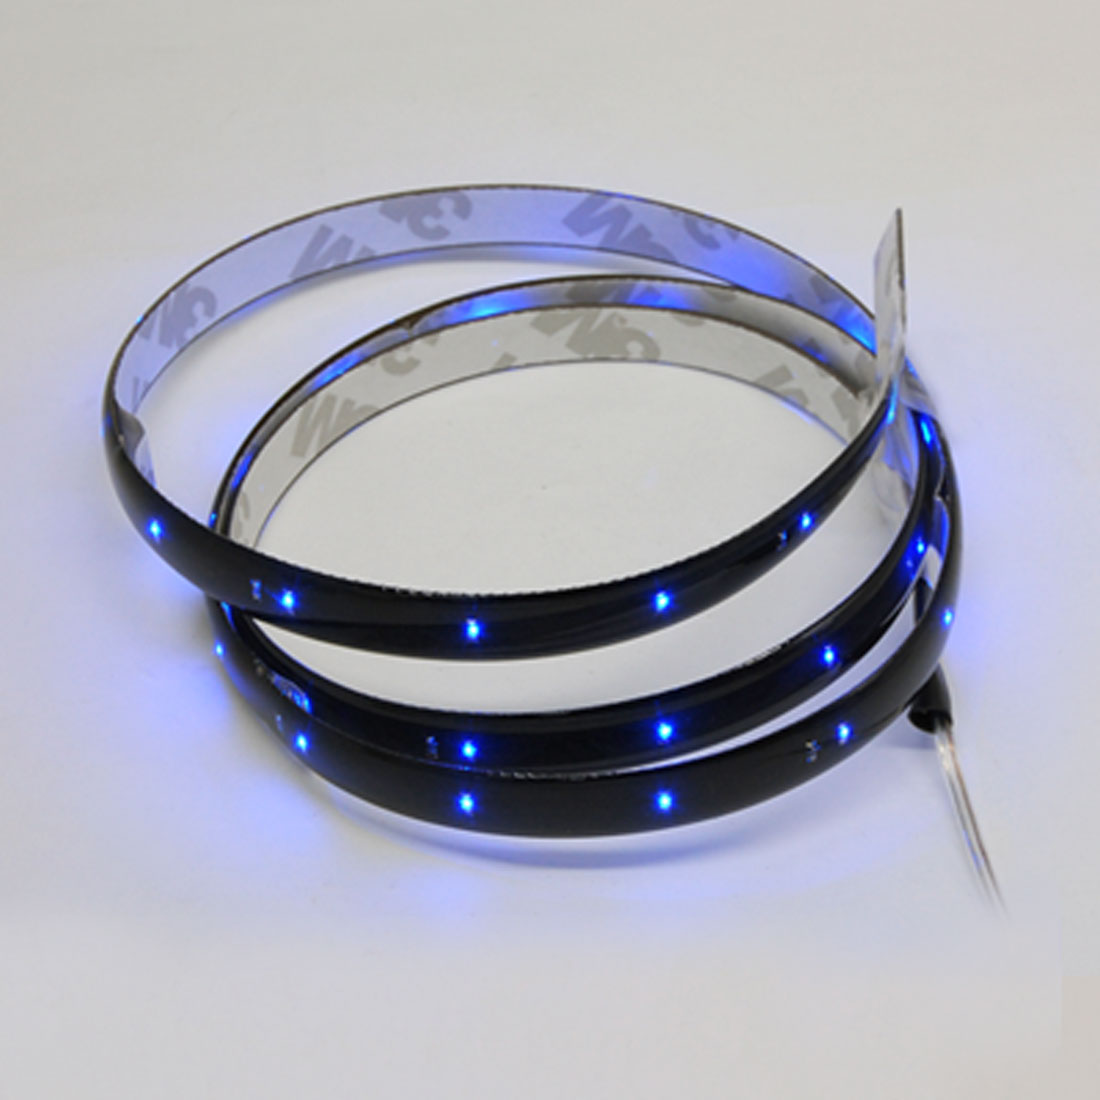 90cm Car Flexible Light Strip 42 Blue LED Vehicle Lamp